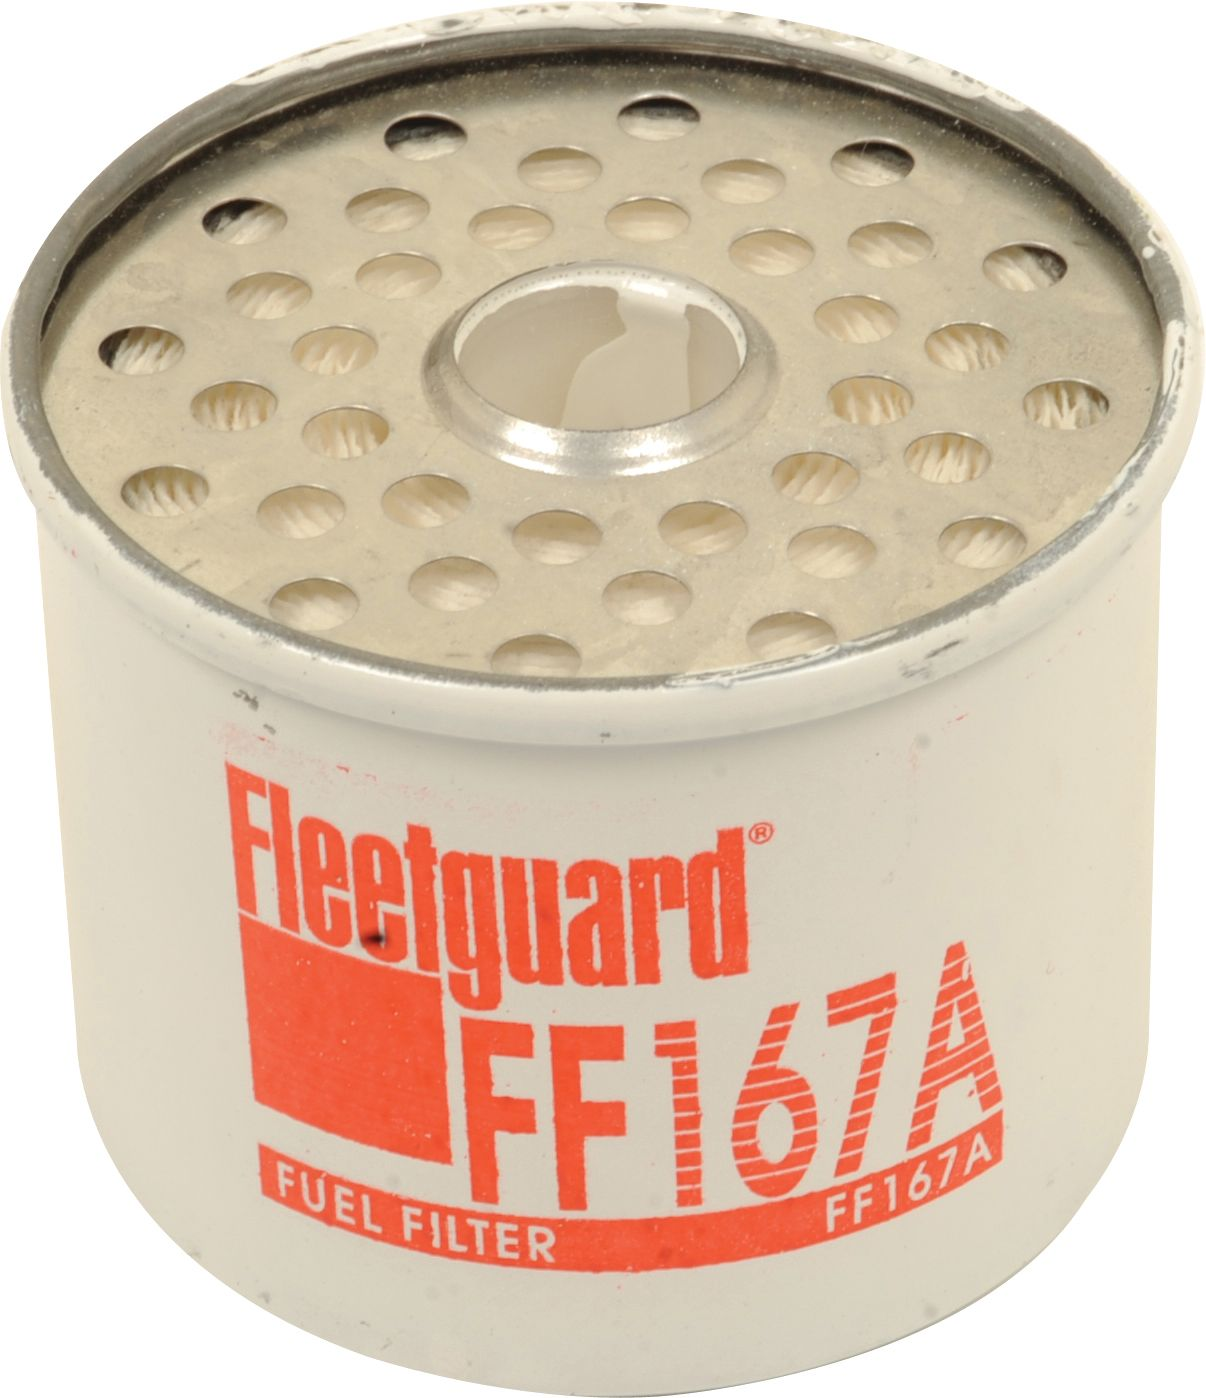 EICHER FUEL FILTER FF167A 109024